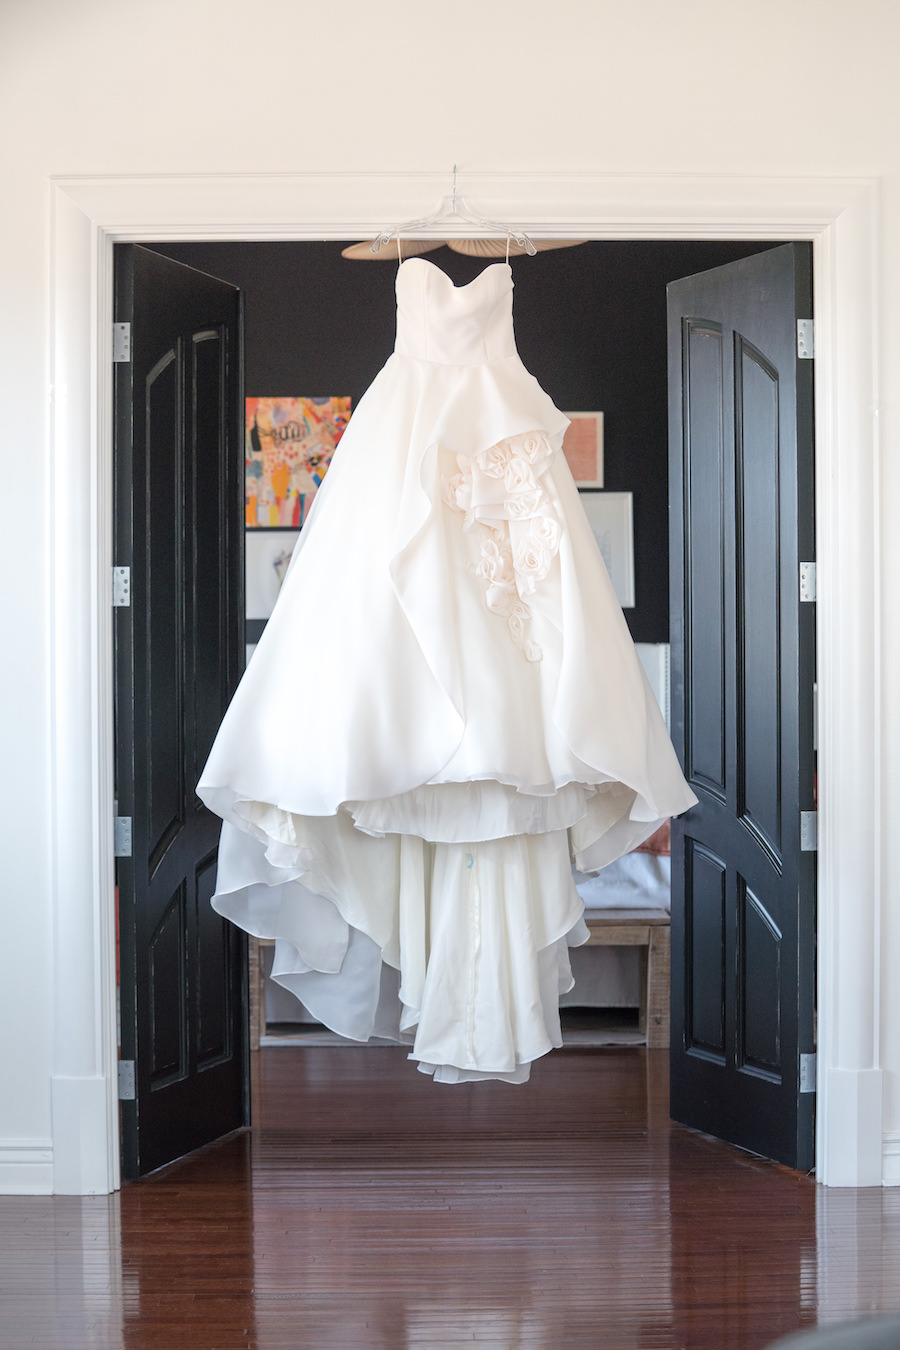 A wedding dress hanging at the penthouse at Loft 310